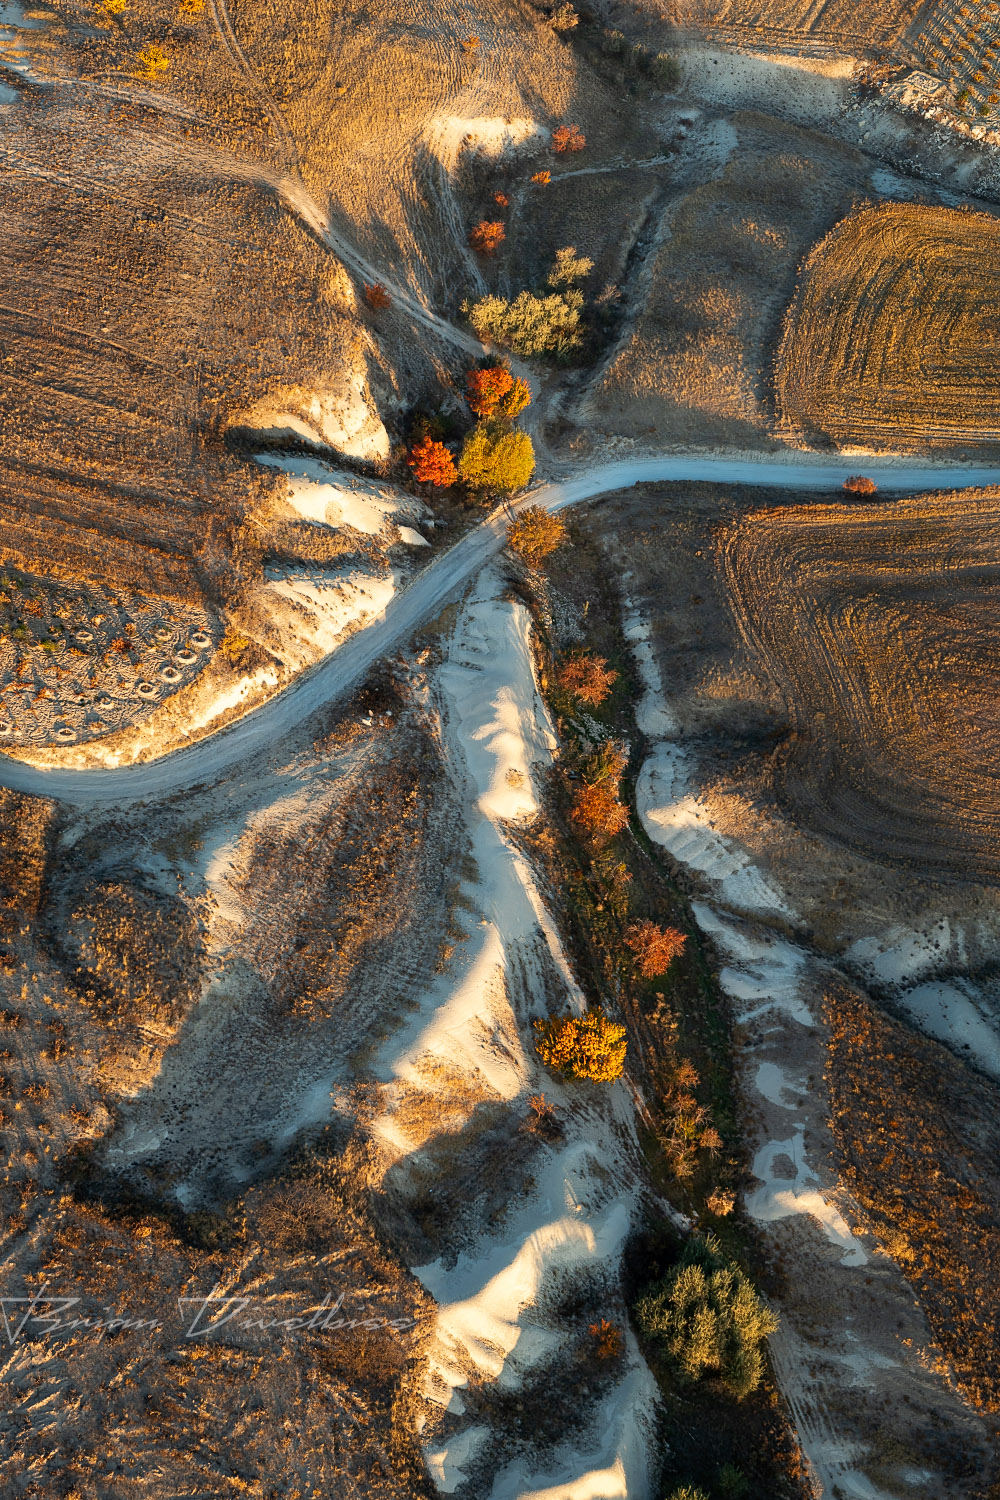 Autumn trees and fields viewed from hot air balloon in Cappadocia, Turkey.